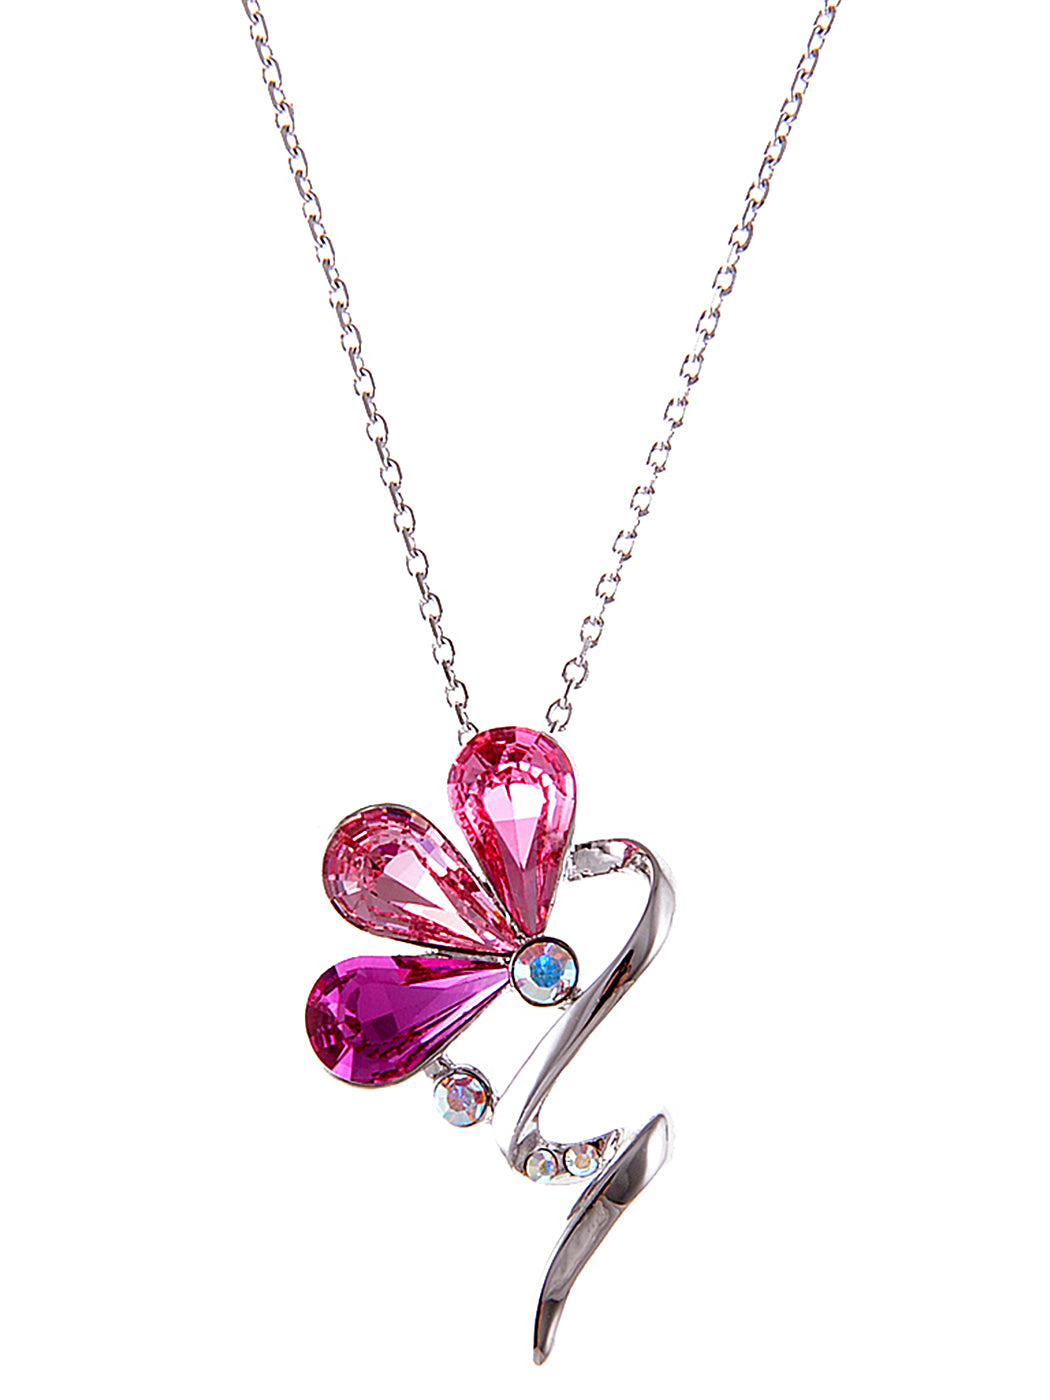 Swarovski Crystal Rose Fuchsia Ab Abstract Flower Pendant Necklace